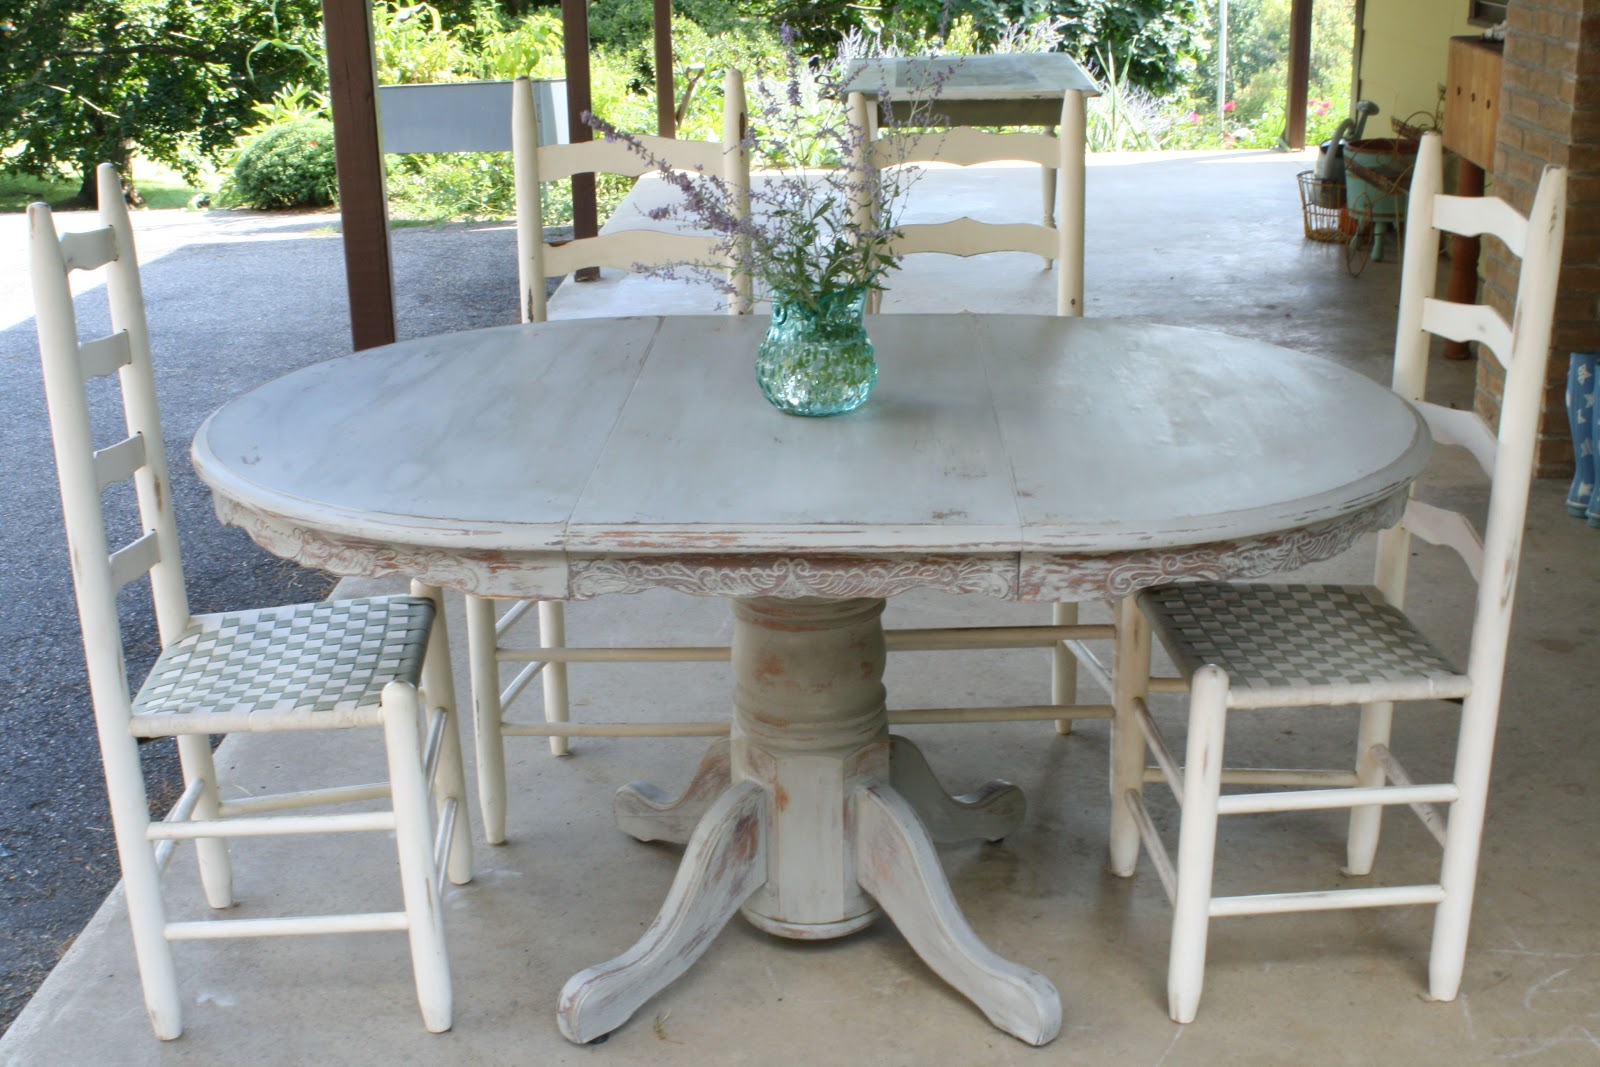 Weathered Paris Gray Dining Table Cassie Bustamante : graytable1 from www.cassiebustamante.com size 1600 x 1067 jpeg 291kB